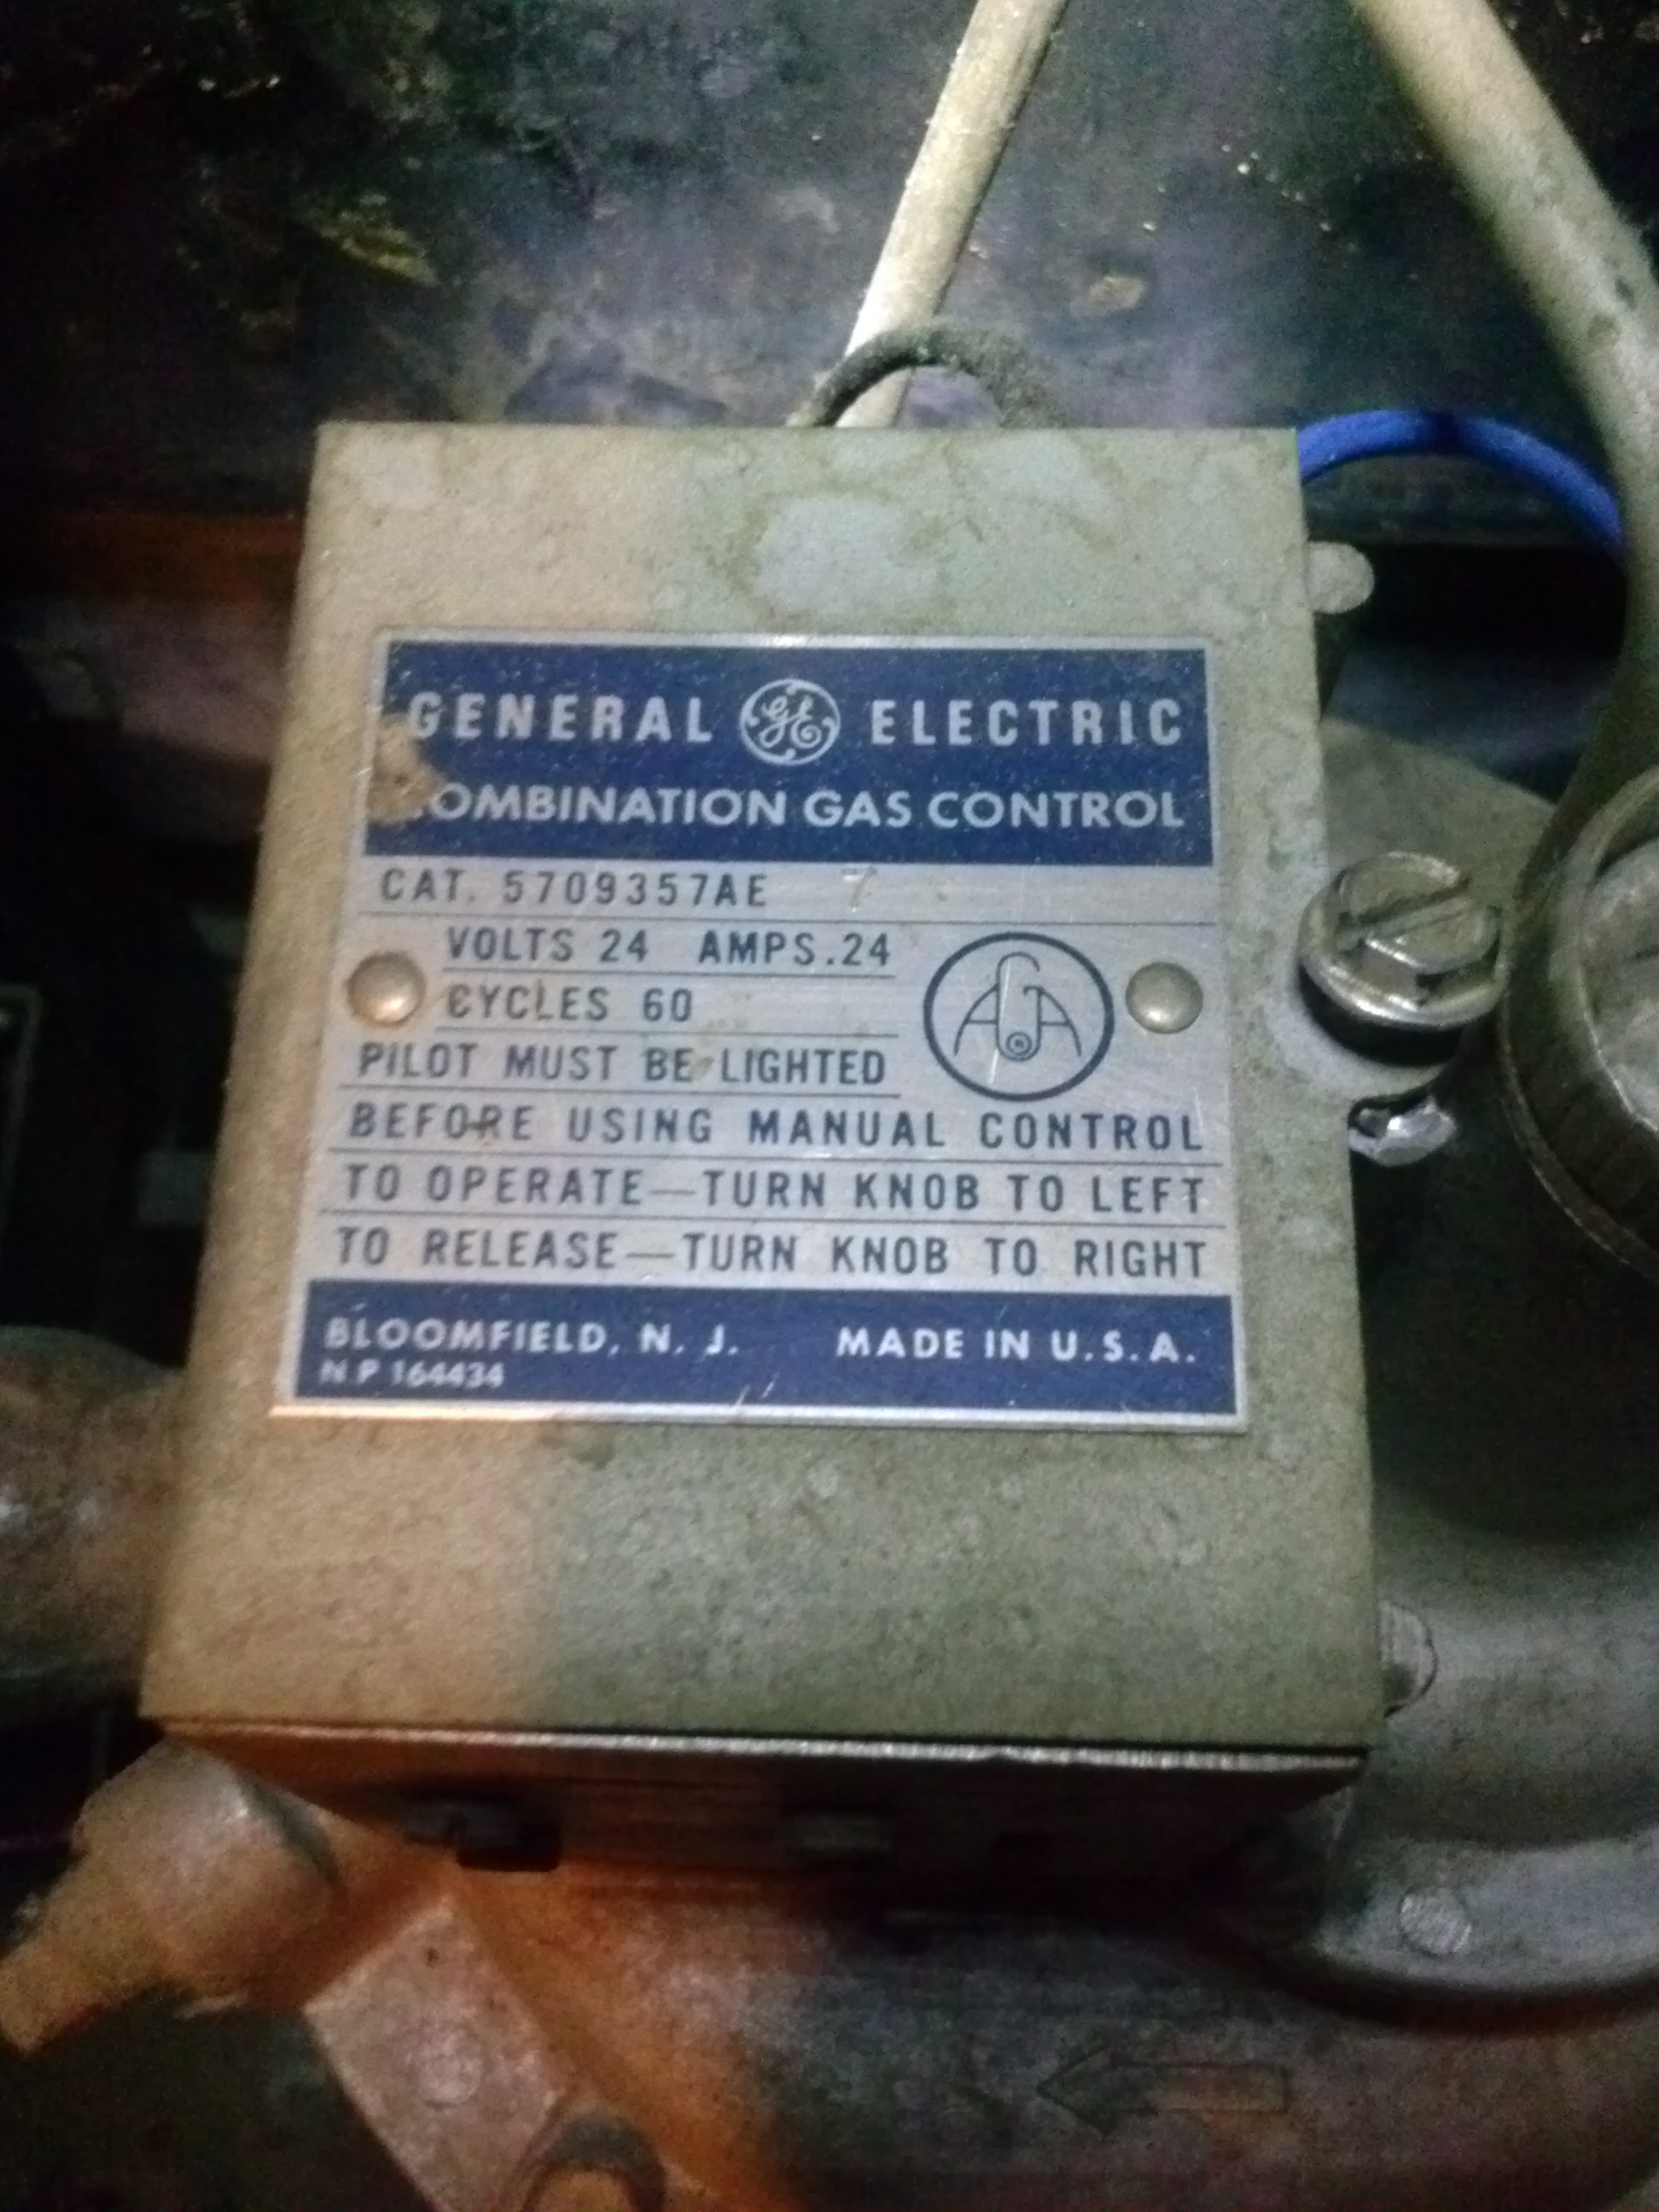 General Electric Gas Boiler — Heating Help: The Wall